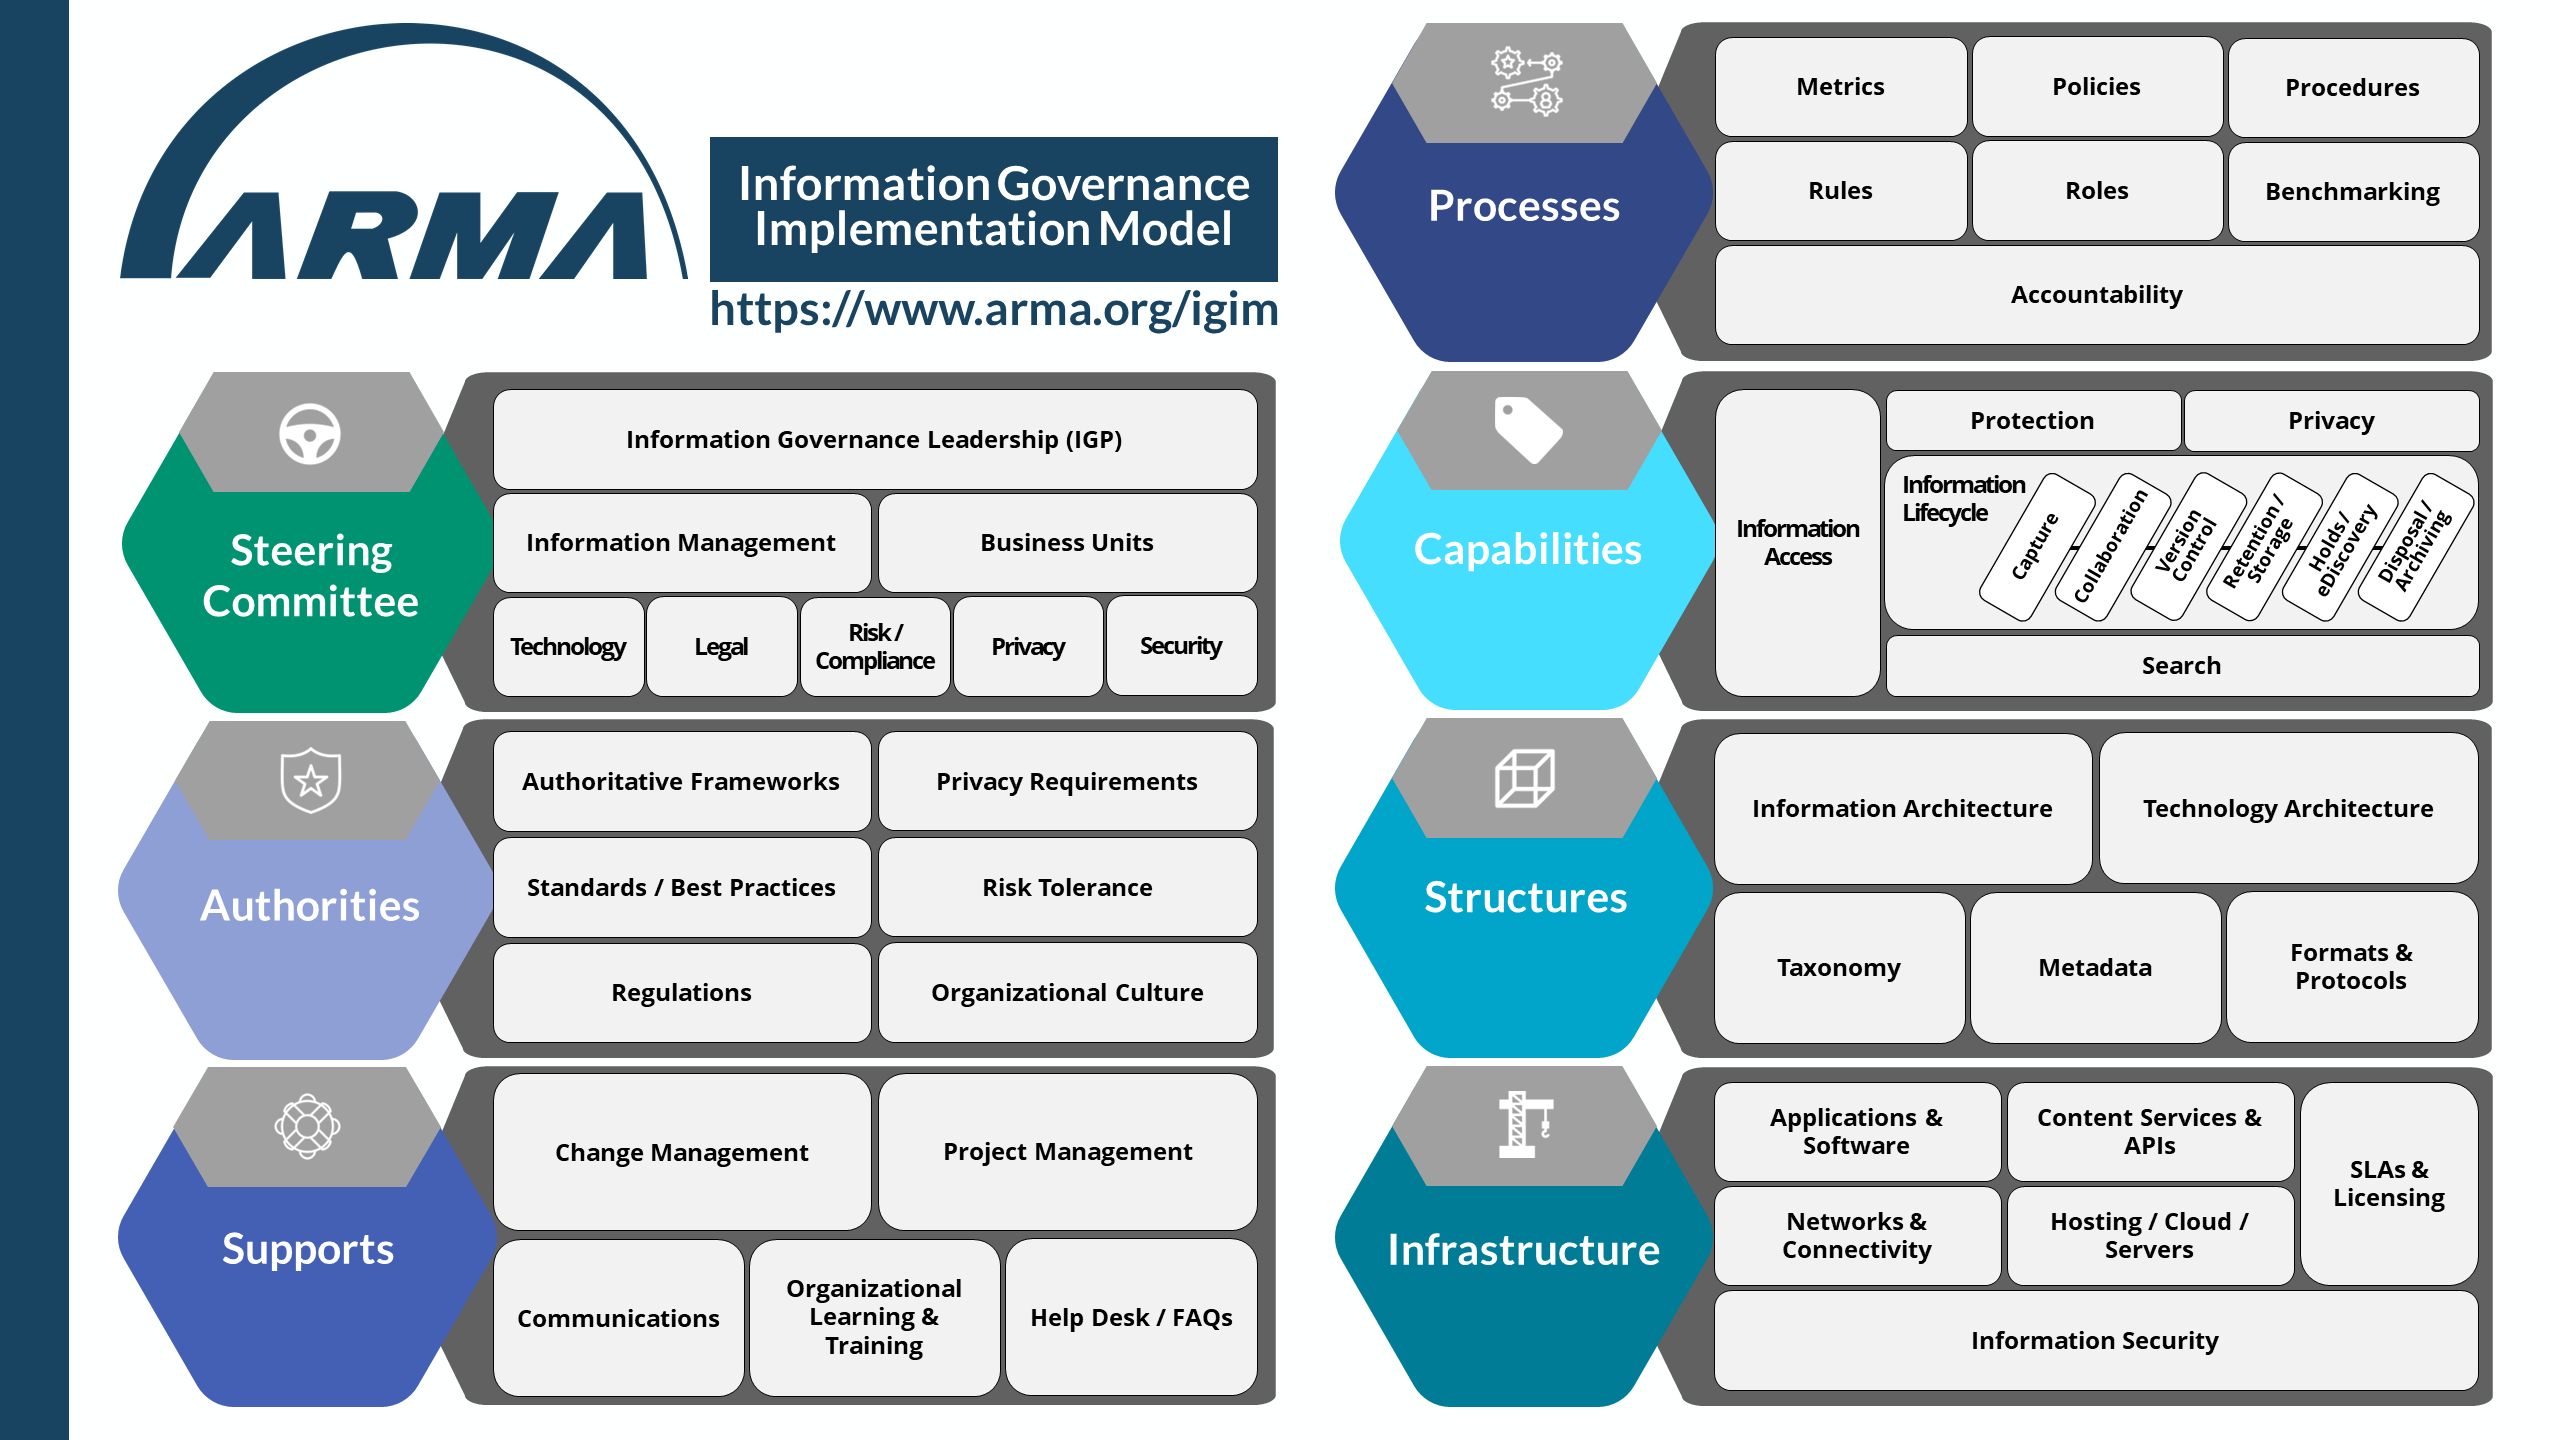 ARMA Information Governance Implementation Model